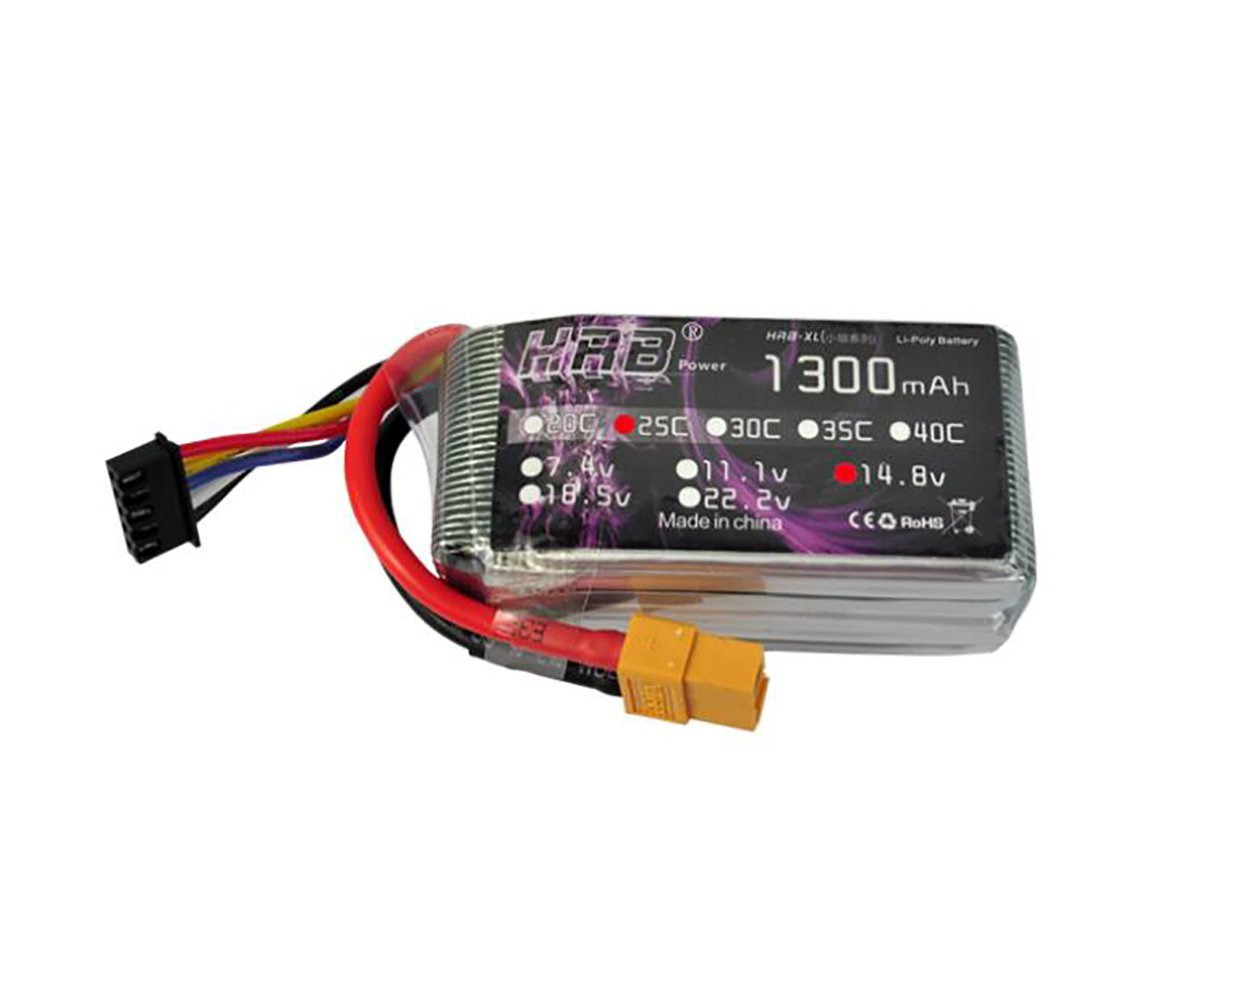 HRB 2Packs 4S 14.8v 1300mAh 25c RC Lipo Battery with xt60 Plug for RC Evader BX Car Truck